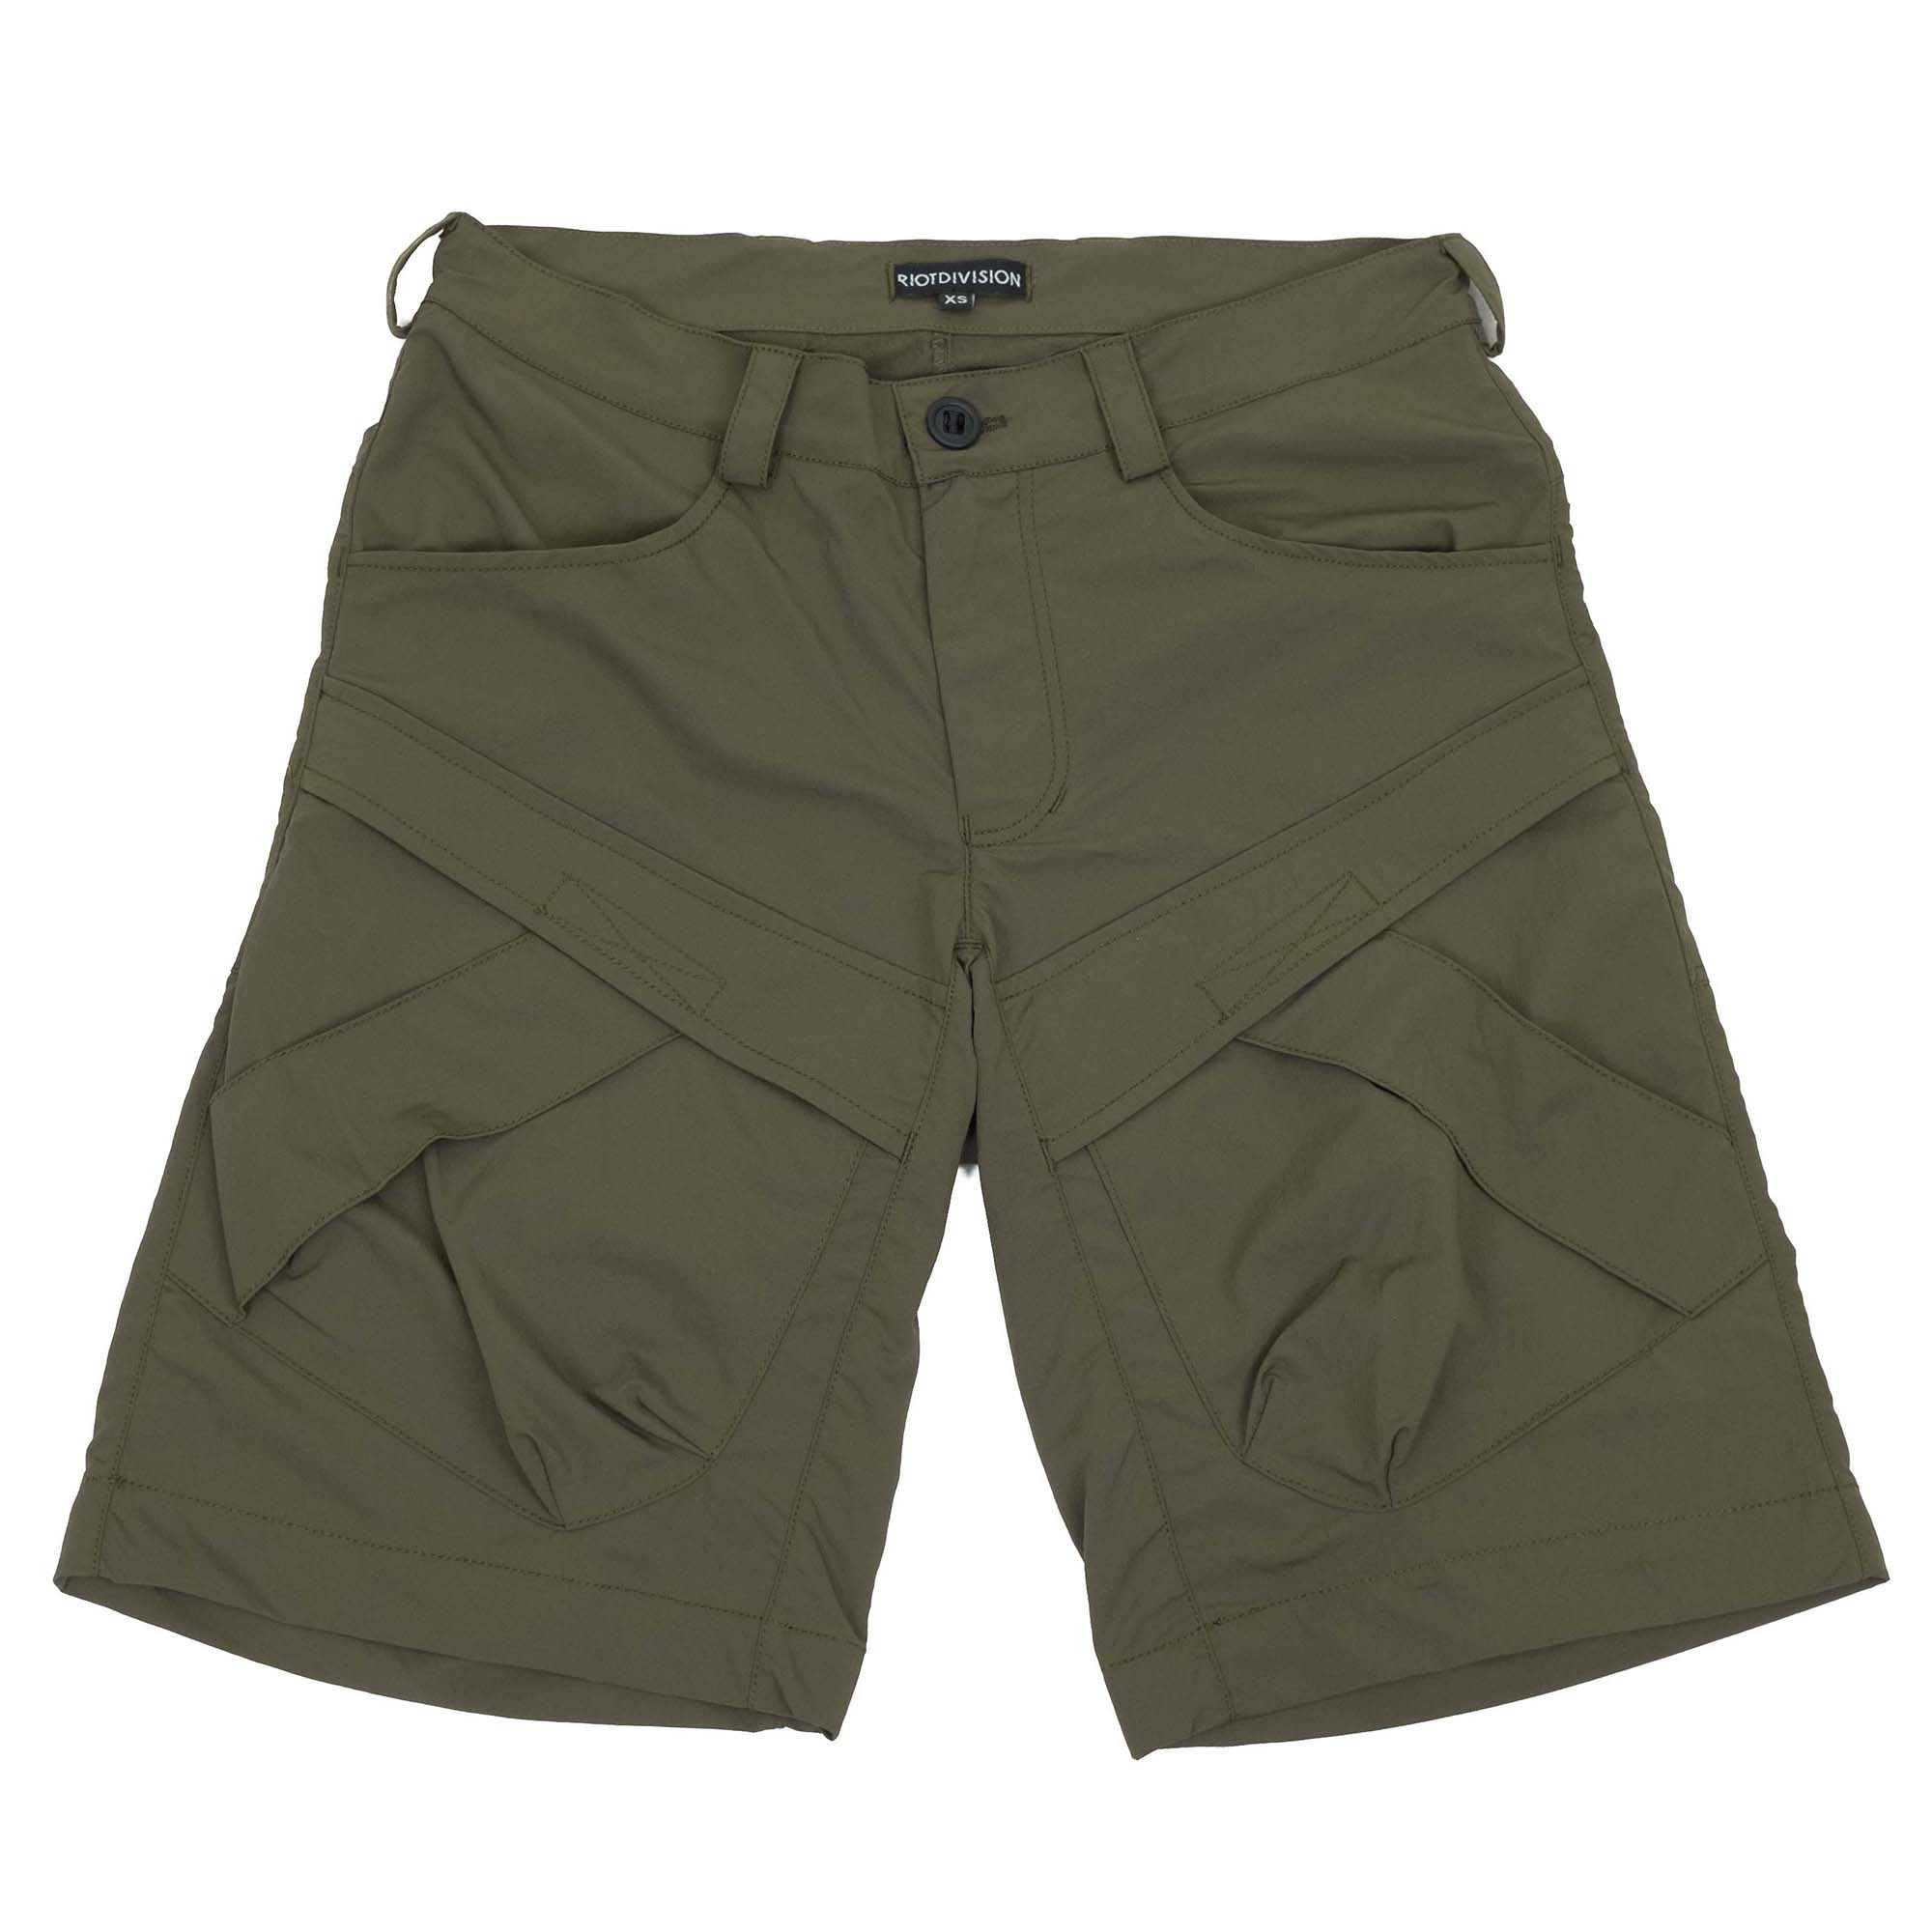 Riot Division Two Pockets Shorts Modified - Khaki